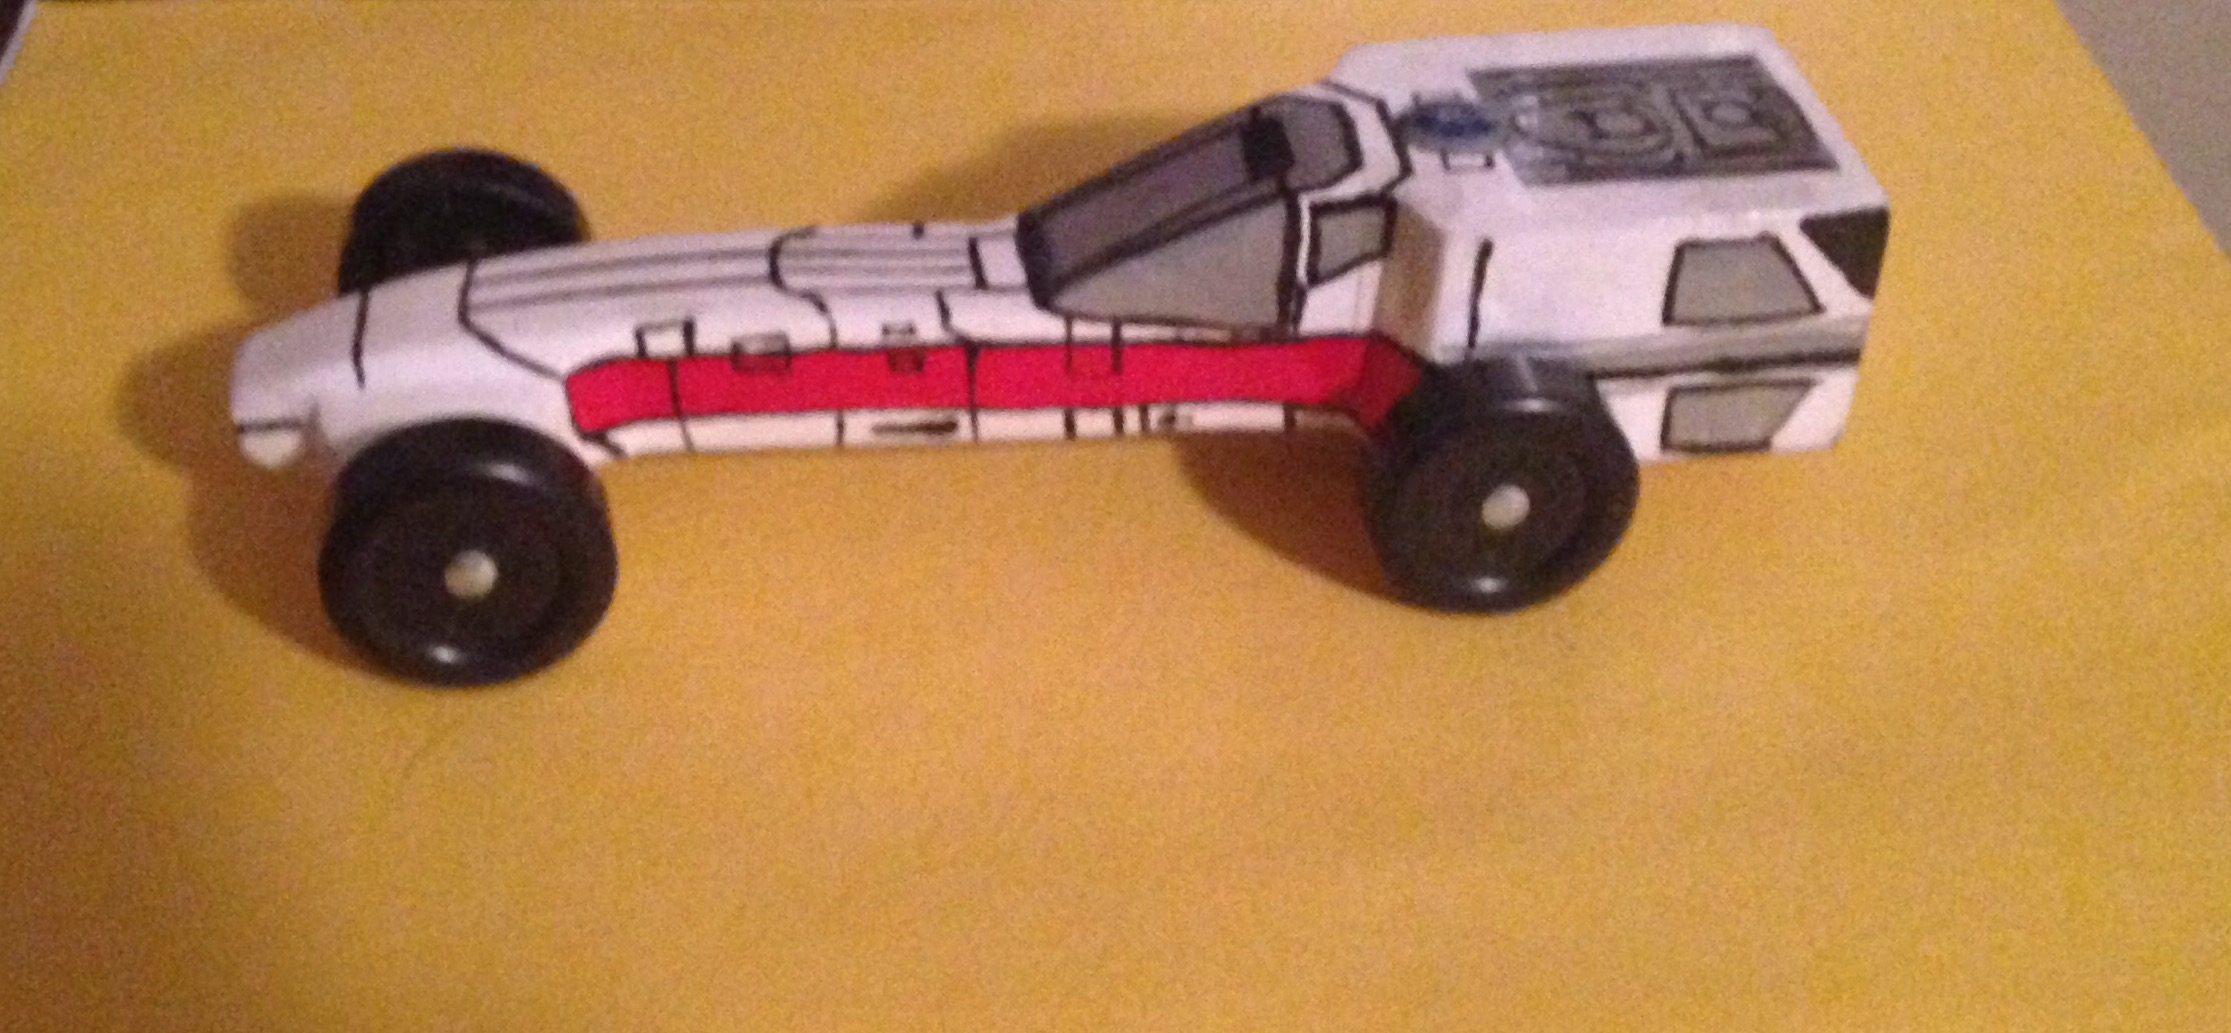 Tommy's X-wing Fighter